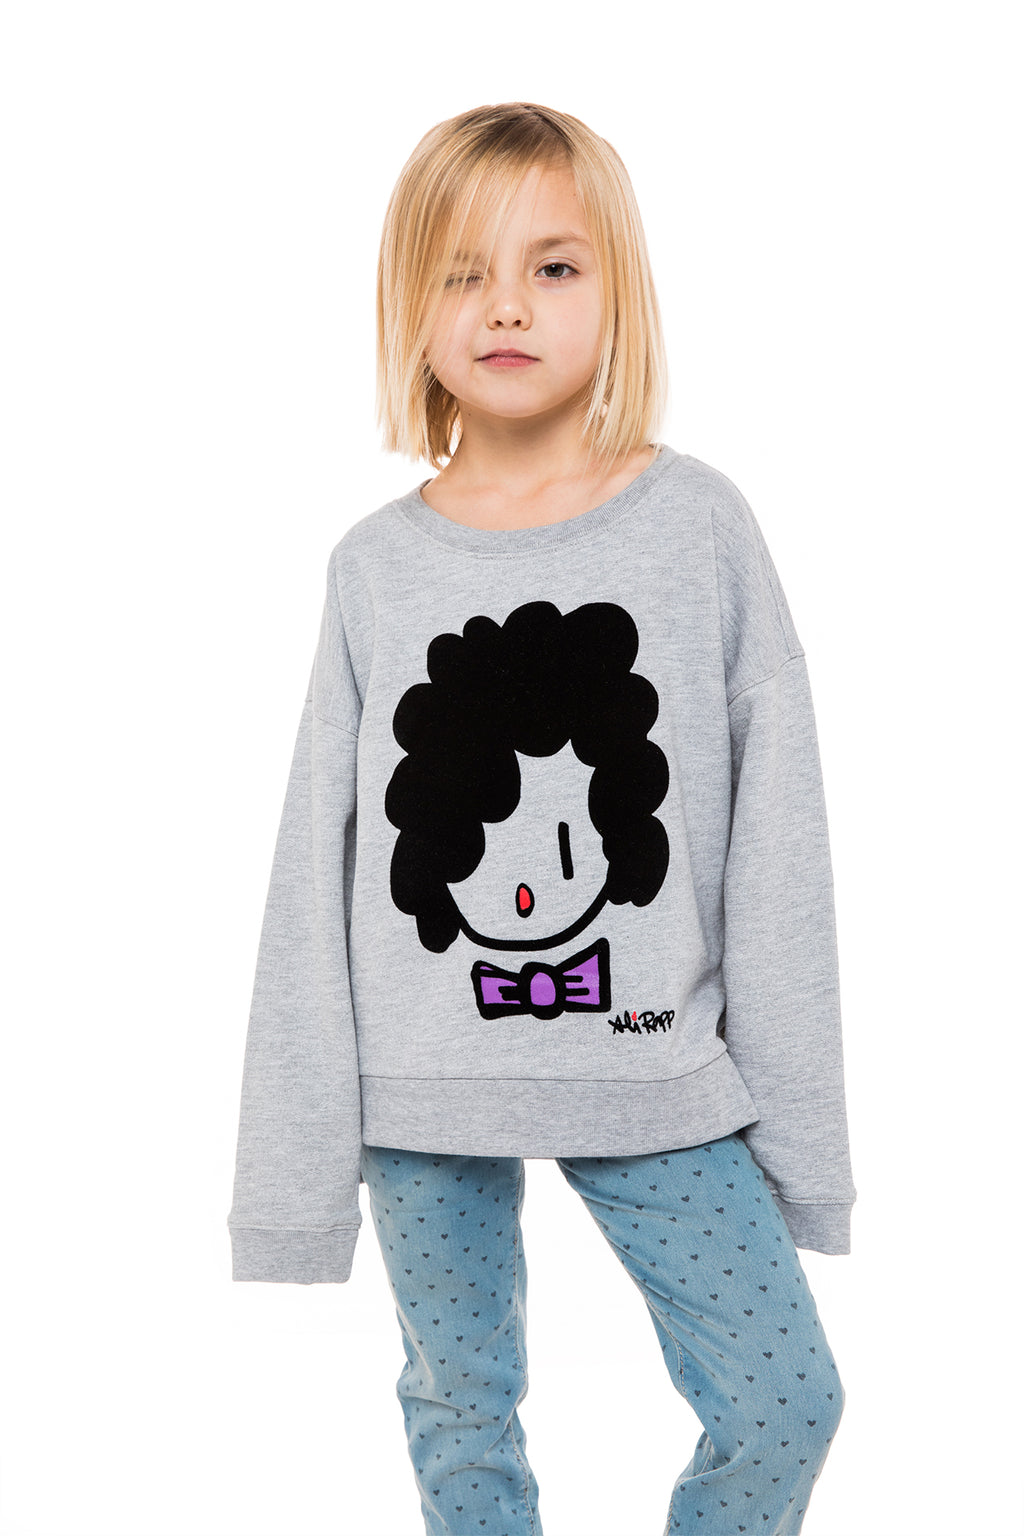 Kids Grey Sweater